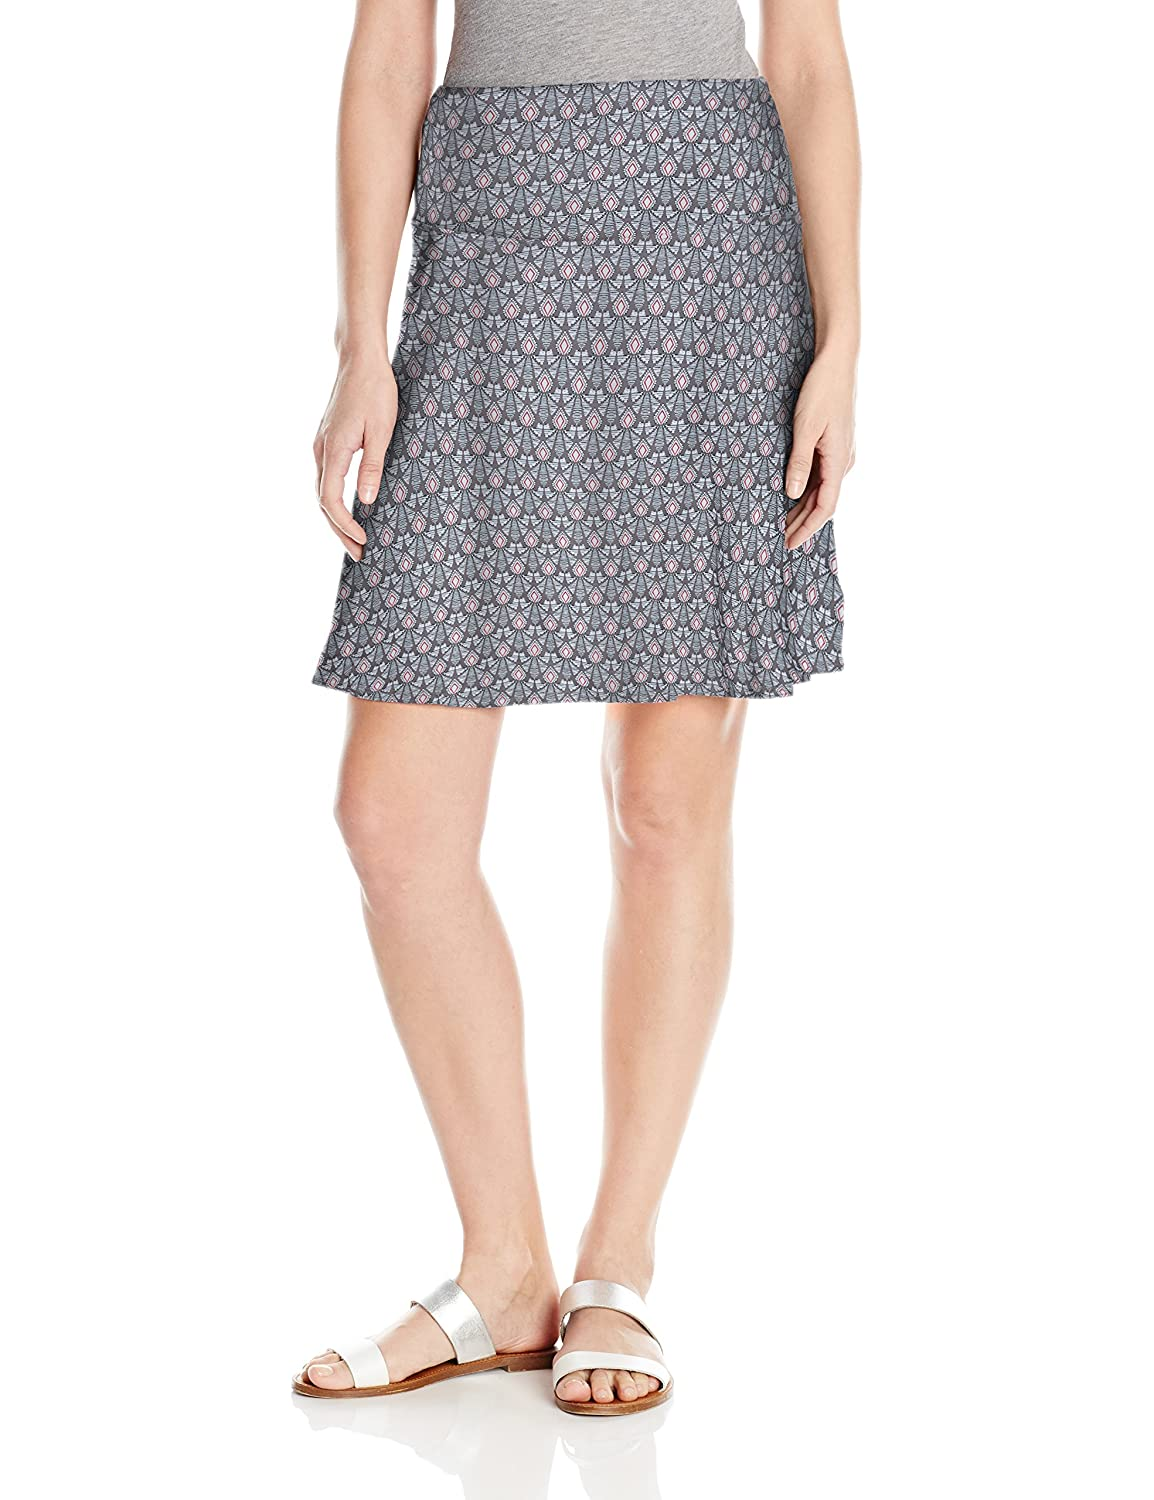 prAna Women's Taj Printed Skirt W31170174